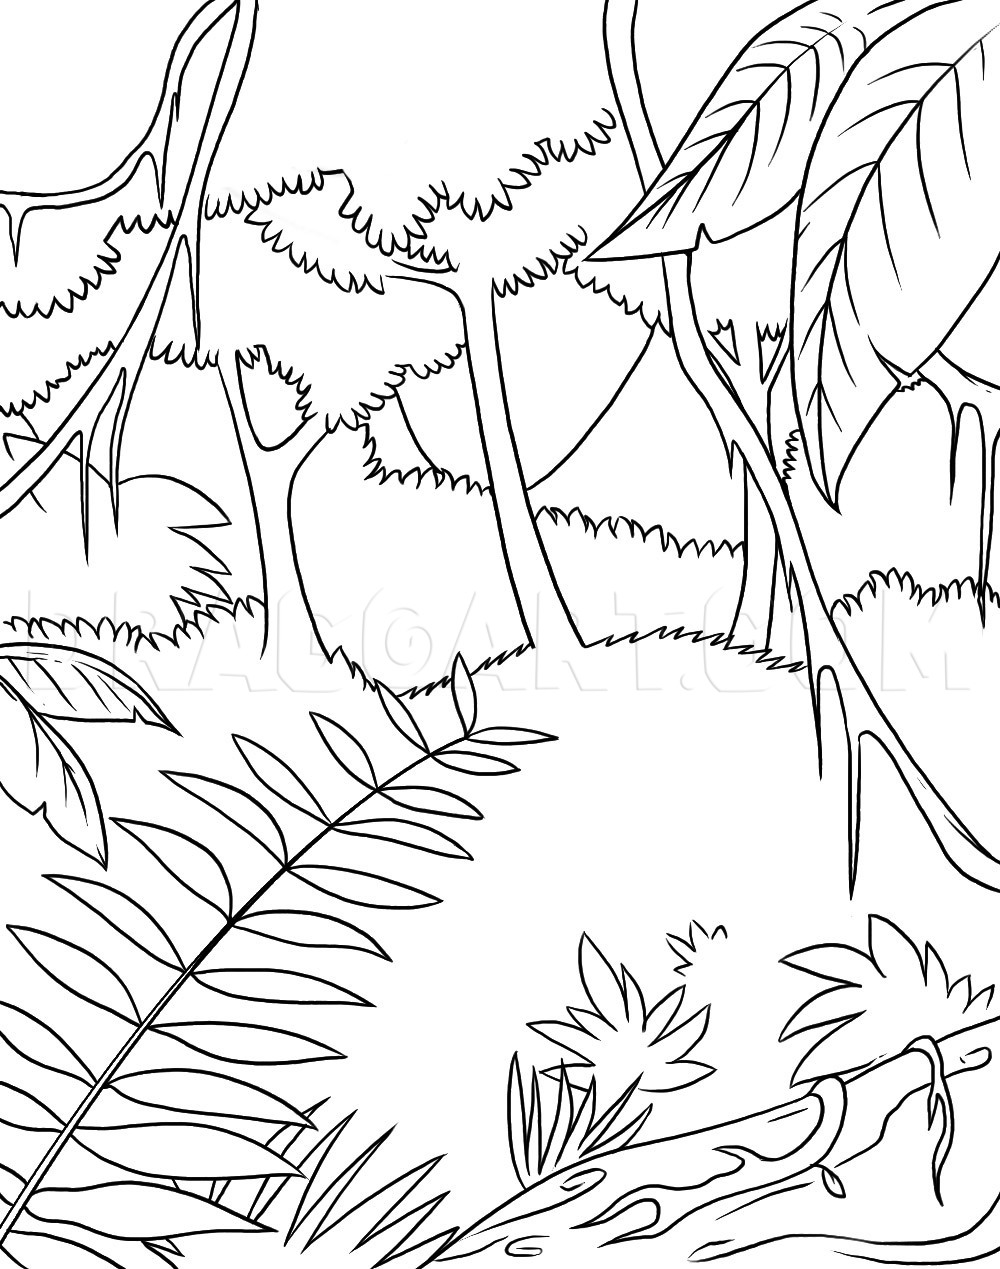 How to Draw Rainforest (Jungle) Scenery for Kids Step by